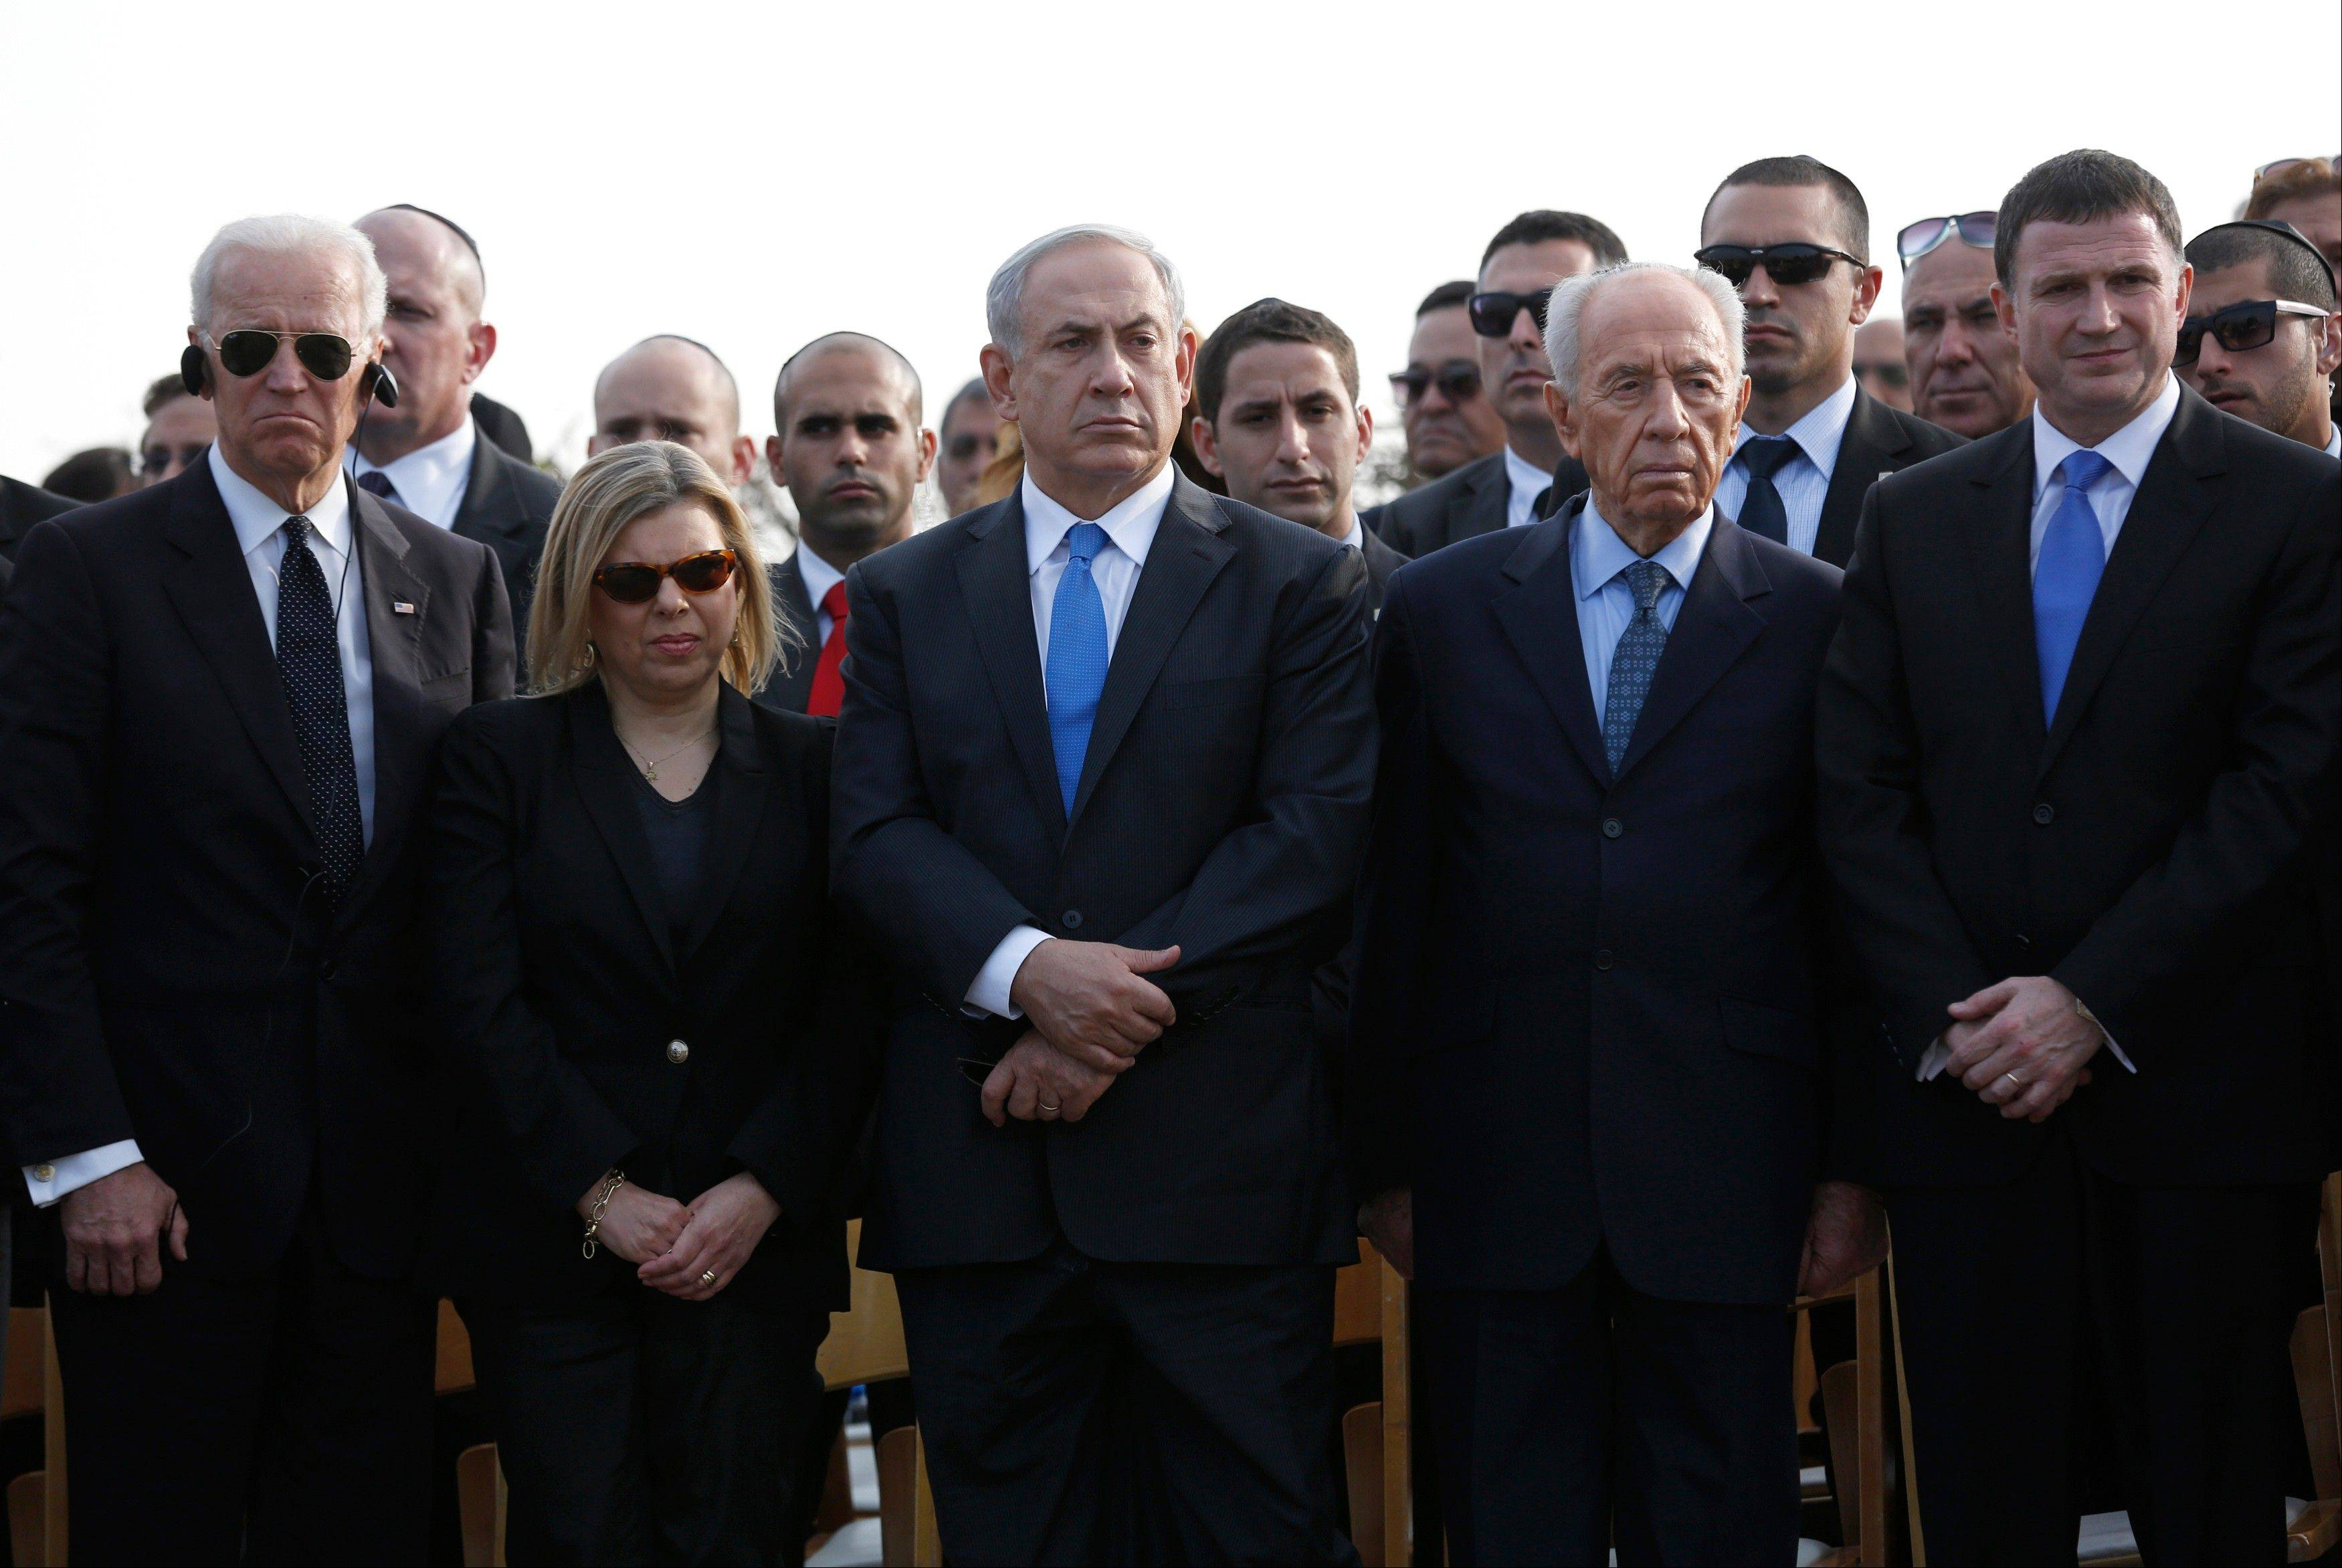 From right to left: Yuli Edelstein, speaker of Israel�s parliament; Israel�s President Shimon Peres; Prime Minister Benjamin Netanyahu and his wife, Sara; and U.S. Vice President Joe Biden attend the funeral of former Israeli Prime Minister Ariel Sharon in southern Israel Monday.